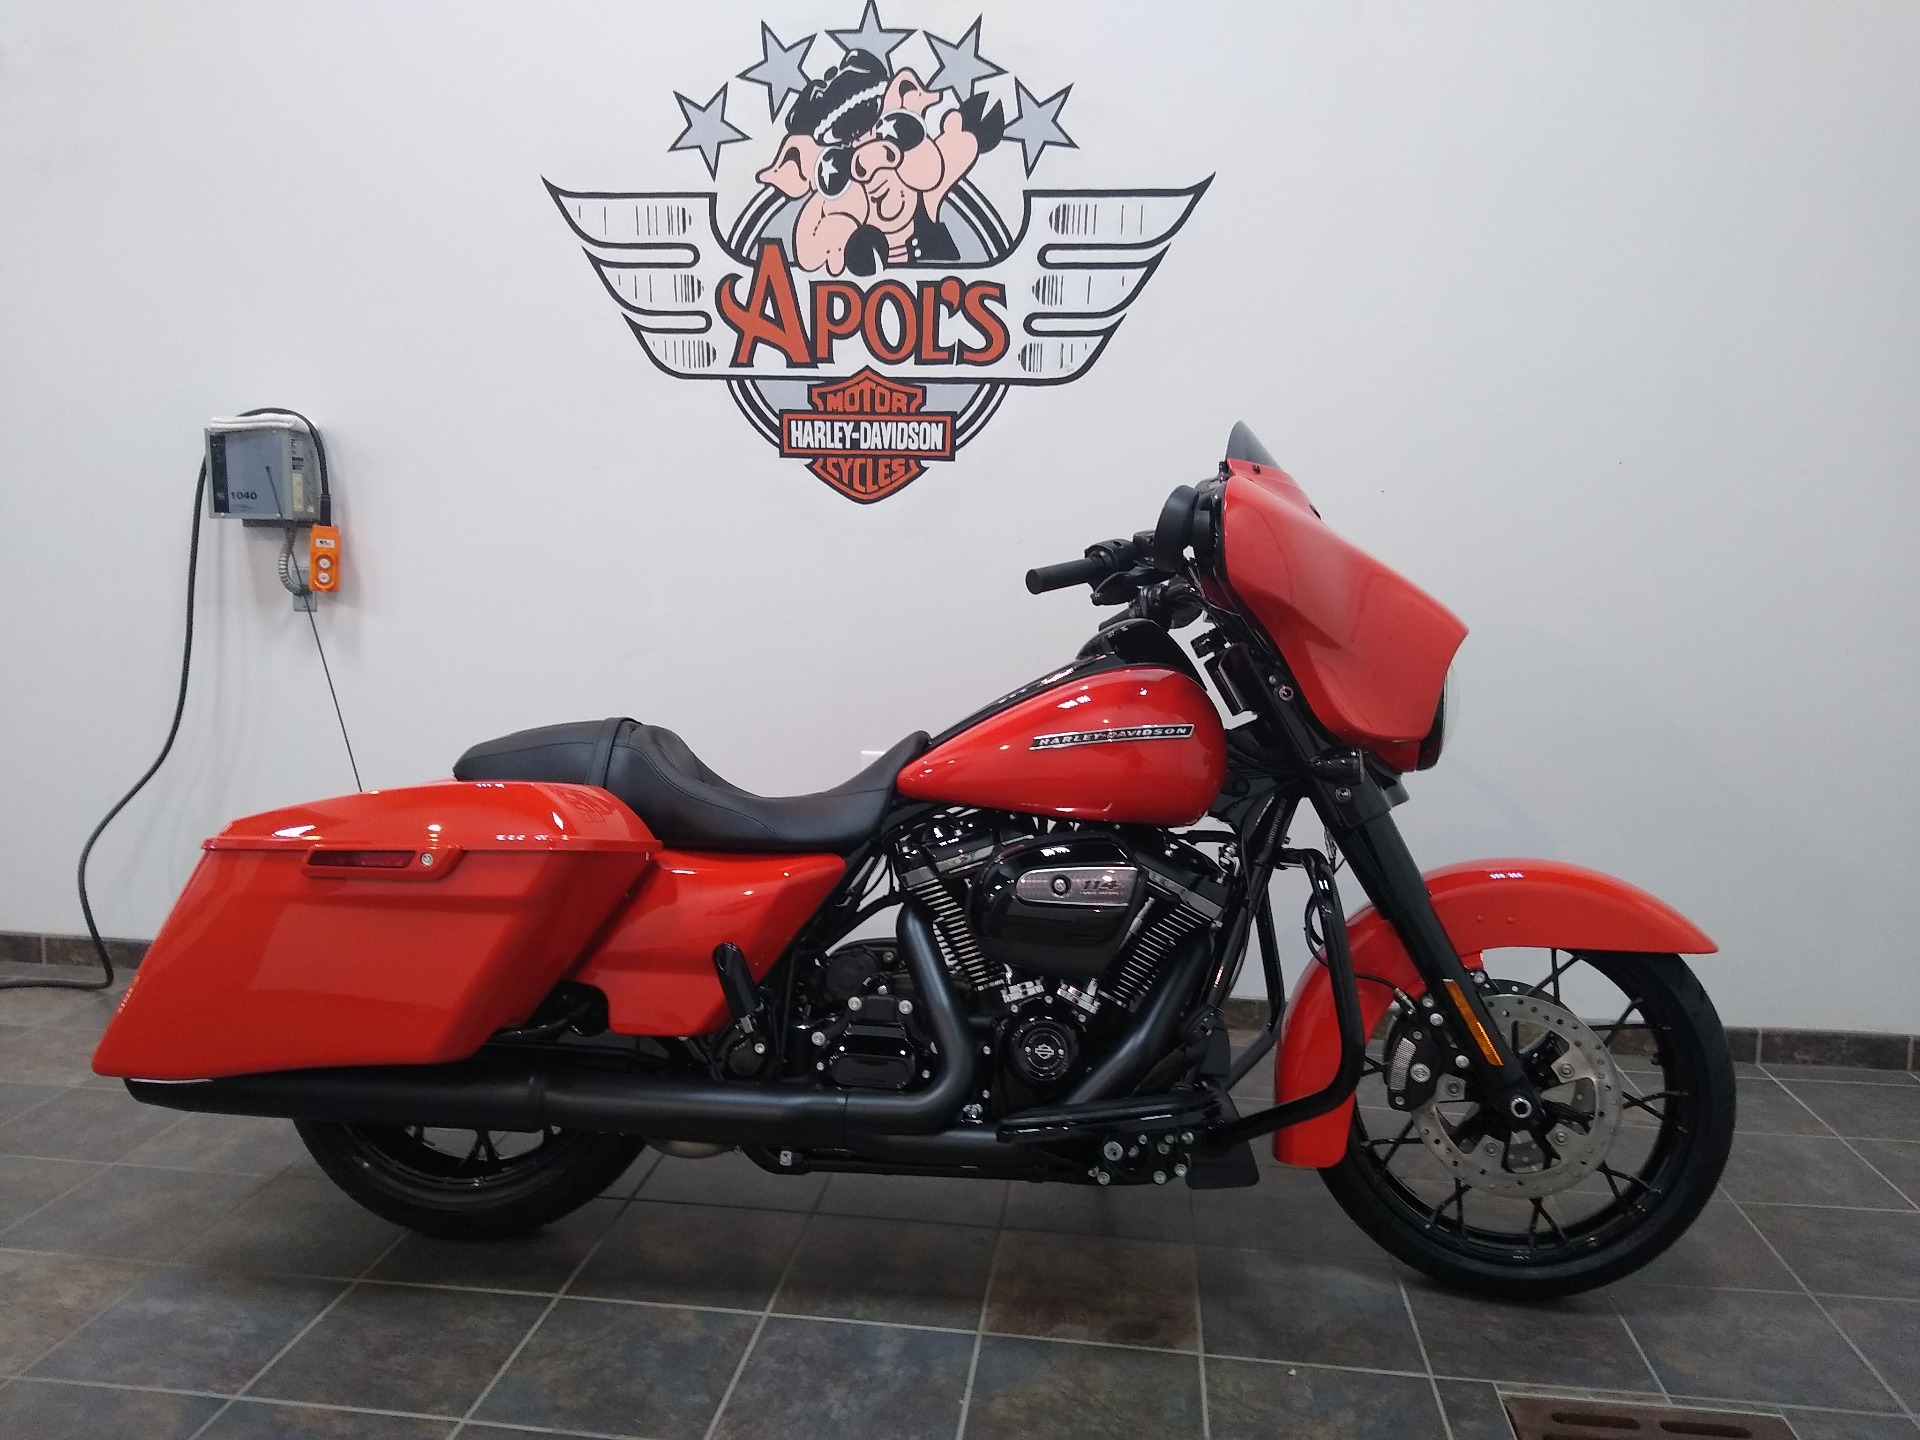 New 2020 Harley Davidson Street Glide Special Performance Orange